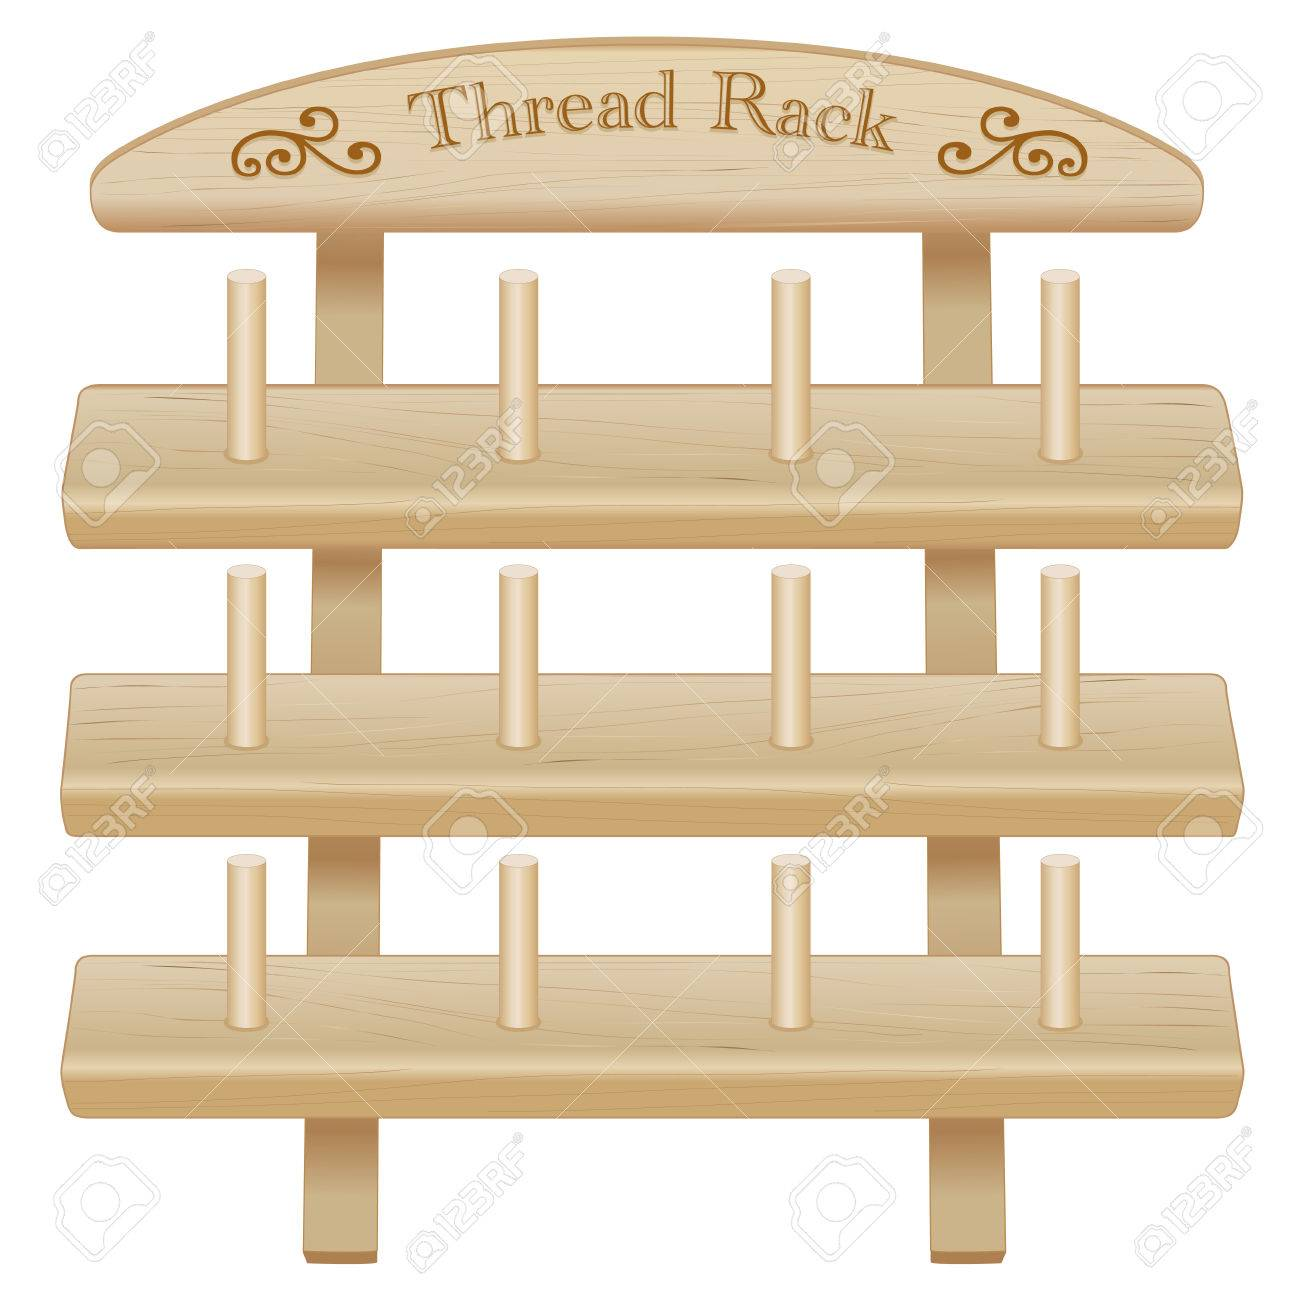 Wood Thread Spool Storage Rack engraved text and scrolls three pine shelves with pegs  sc 1 st  123RF.com & Wood Thread Spool Storage Rack Engraved Text And Scrolls Three ...